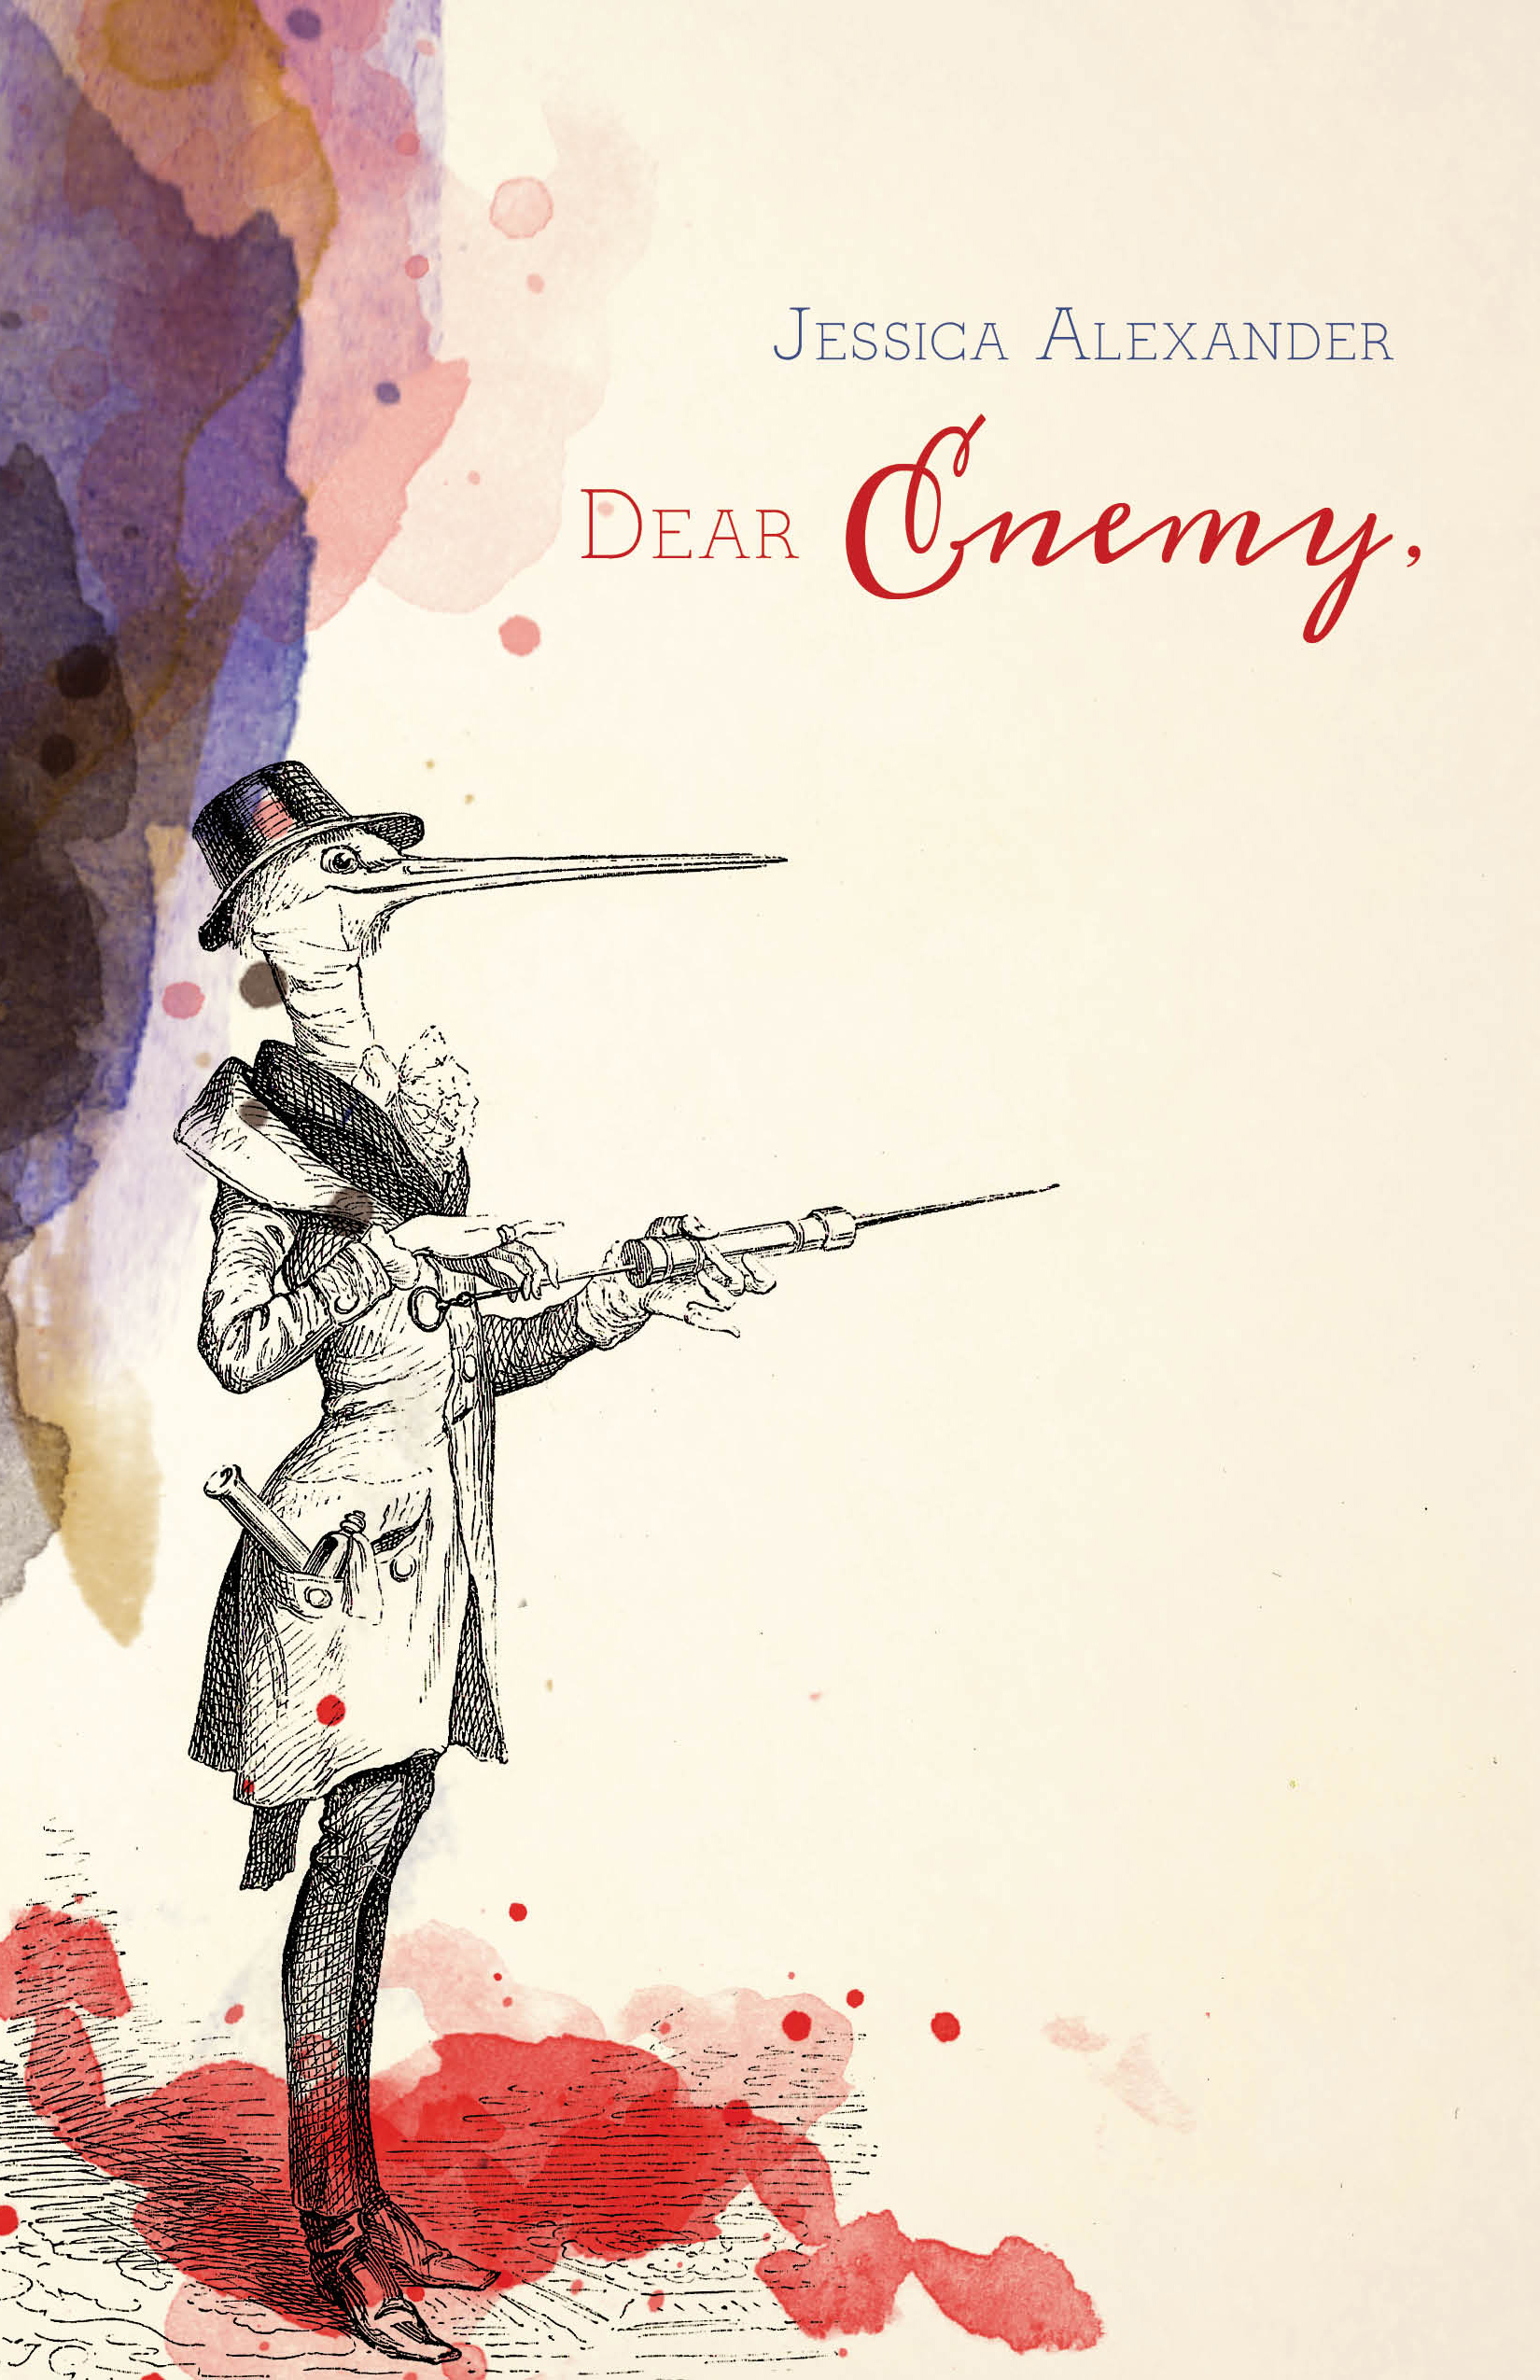 Dear Enemy,